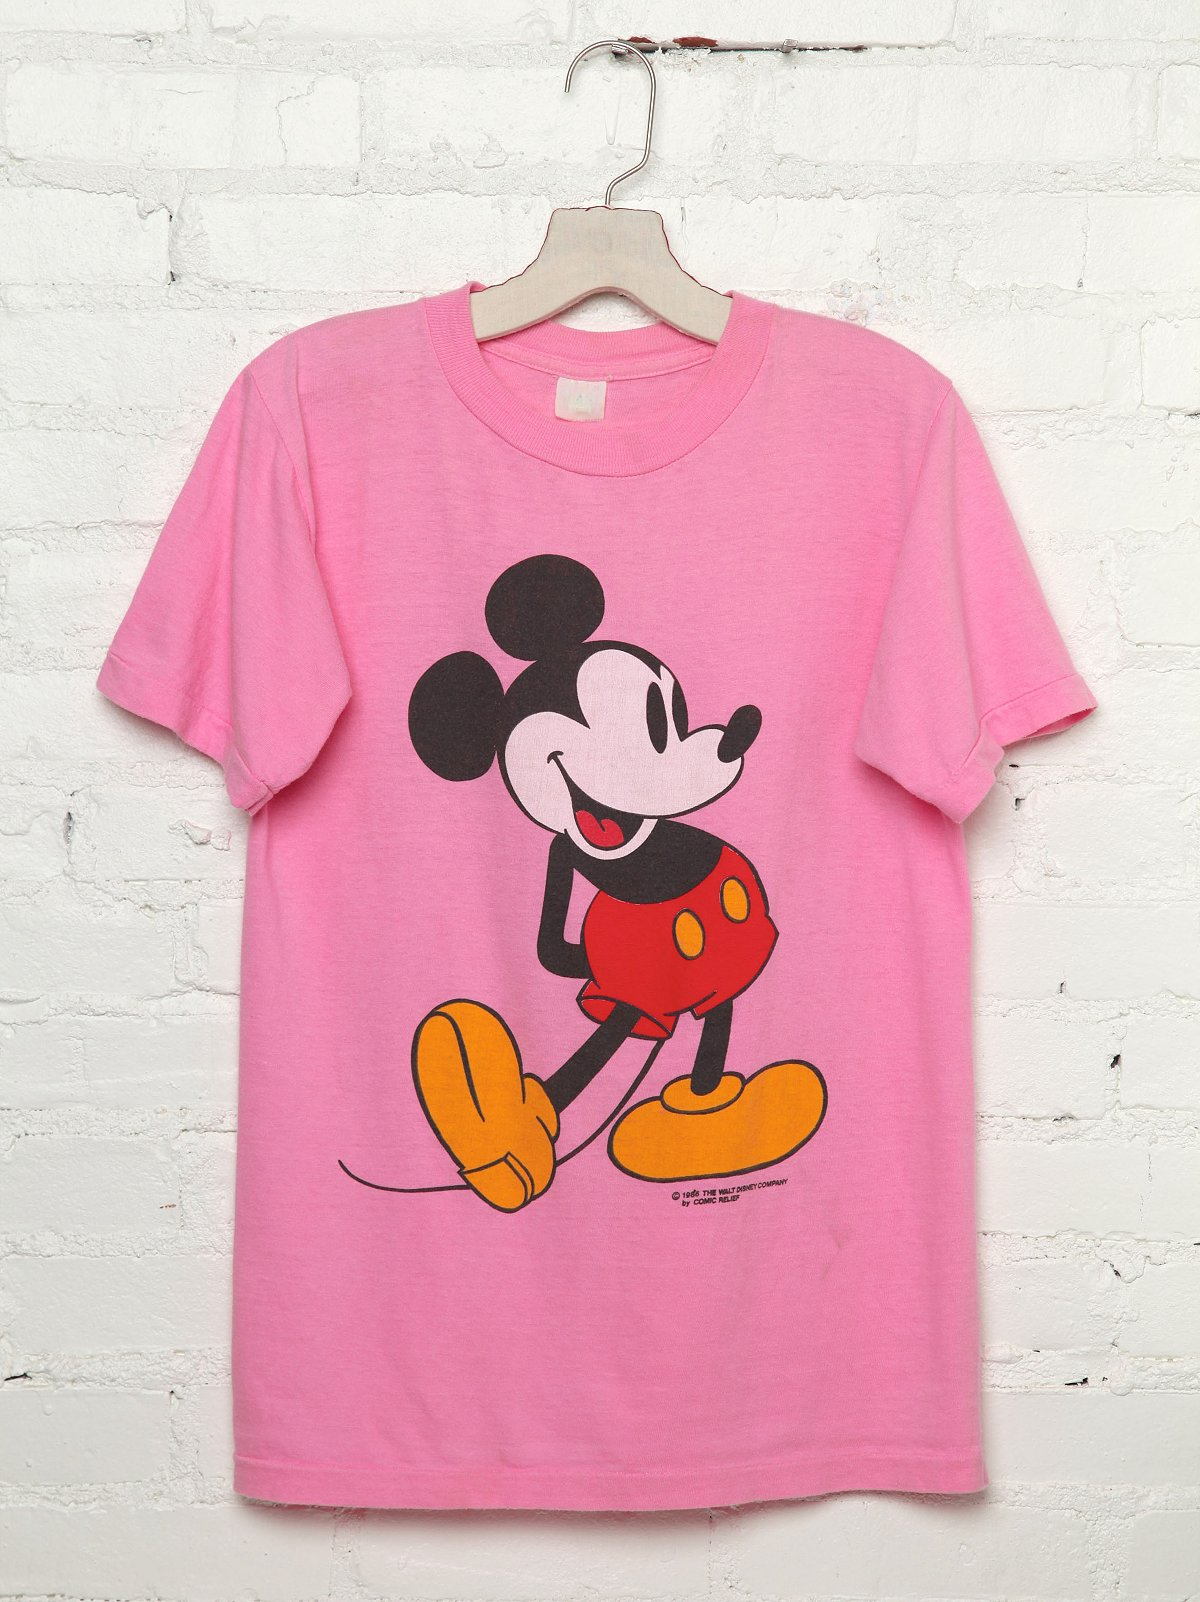 Vintage Hot Pink Mickey Mouse Tee